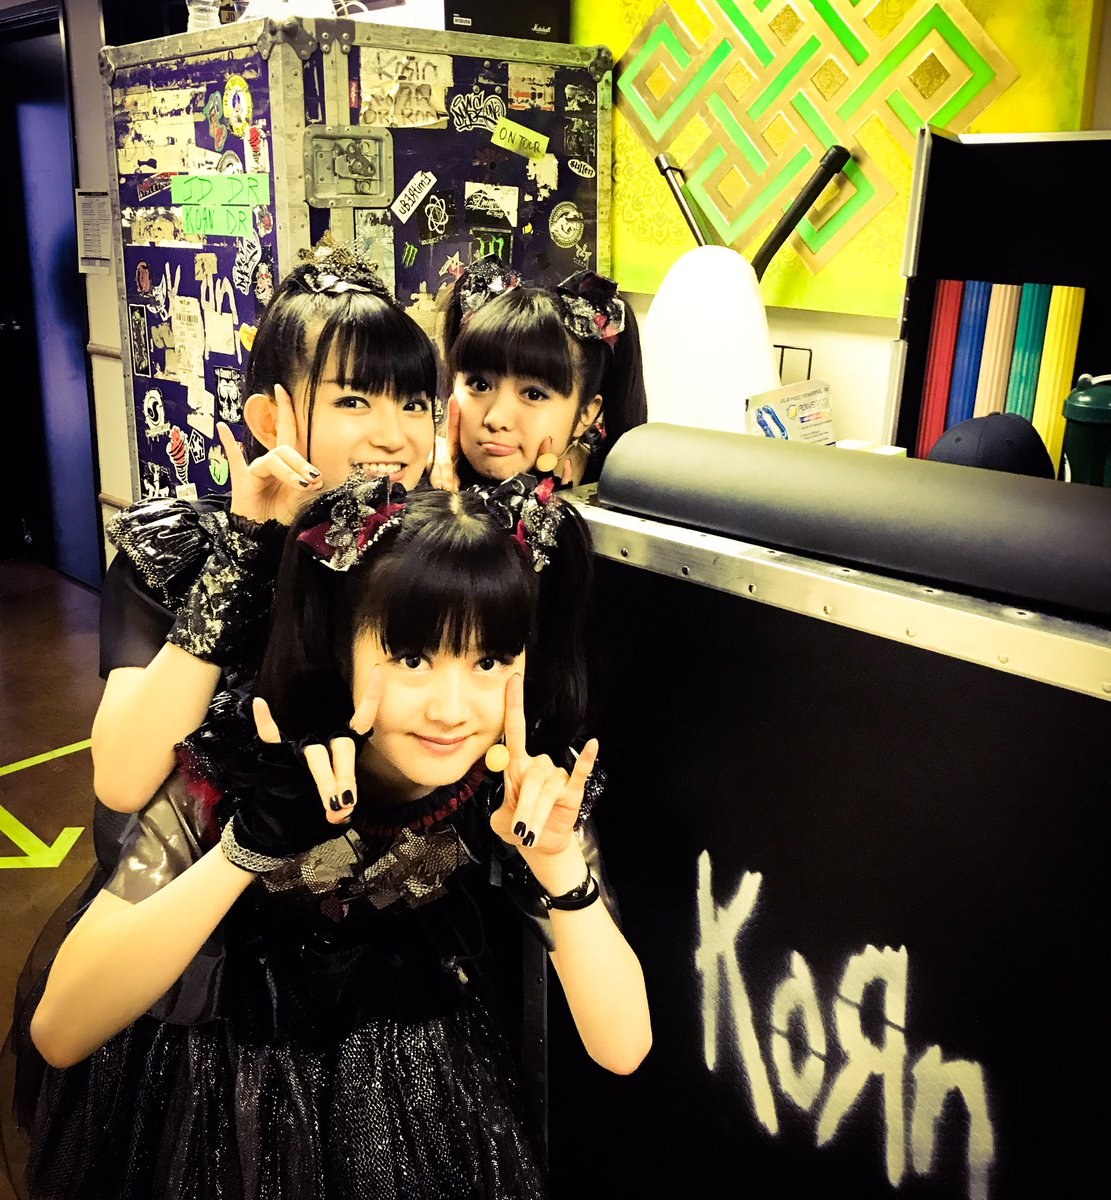 Are you ready @theforum !? #BABYMETAL 's show coming soon! #Korn #StoneSour https;//t.co/8OxNiHd3Zk